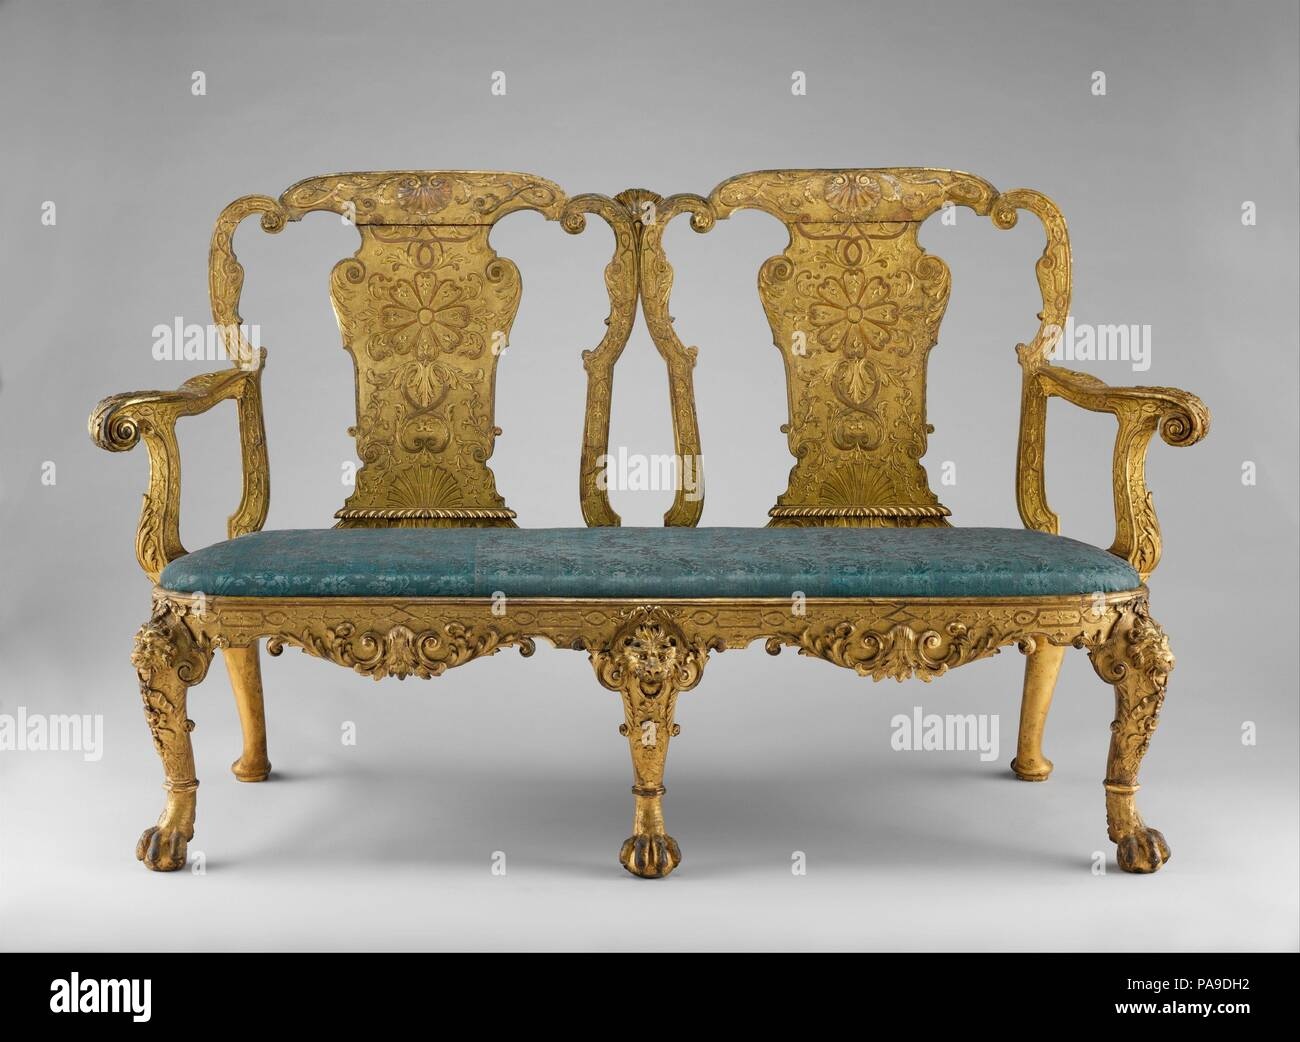 Settee. Culture: British. Dimensions: Overall: 41 × 67 1/2 × 26 in. (104.1 × 171.5 × 66 cm). Date: ca. 1730-35.  This piece is from a large set of at least eight side chairs, four settees, four stools, and two side tables formerly attributed to James Moore (ca. 1670-1726) and said to have been made for Stowe, Buckinghamshire, a provenance now questioned. Museum: Metropolitan Museum of Art, New York, USA. - Stock Image